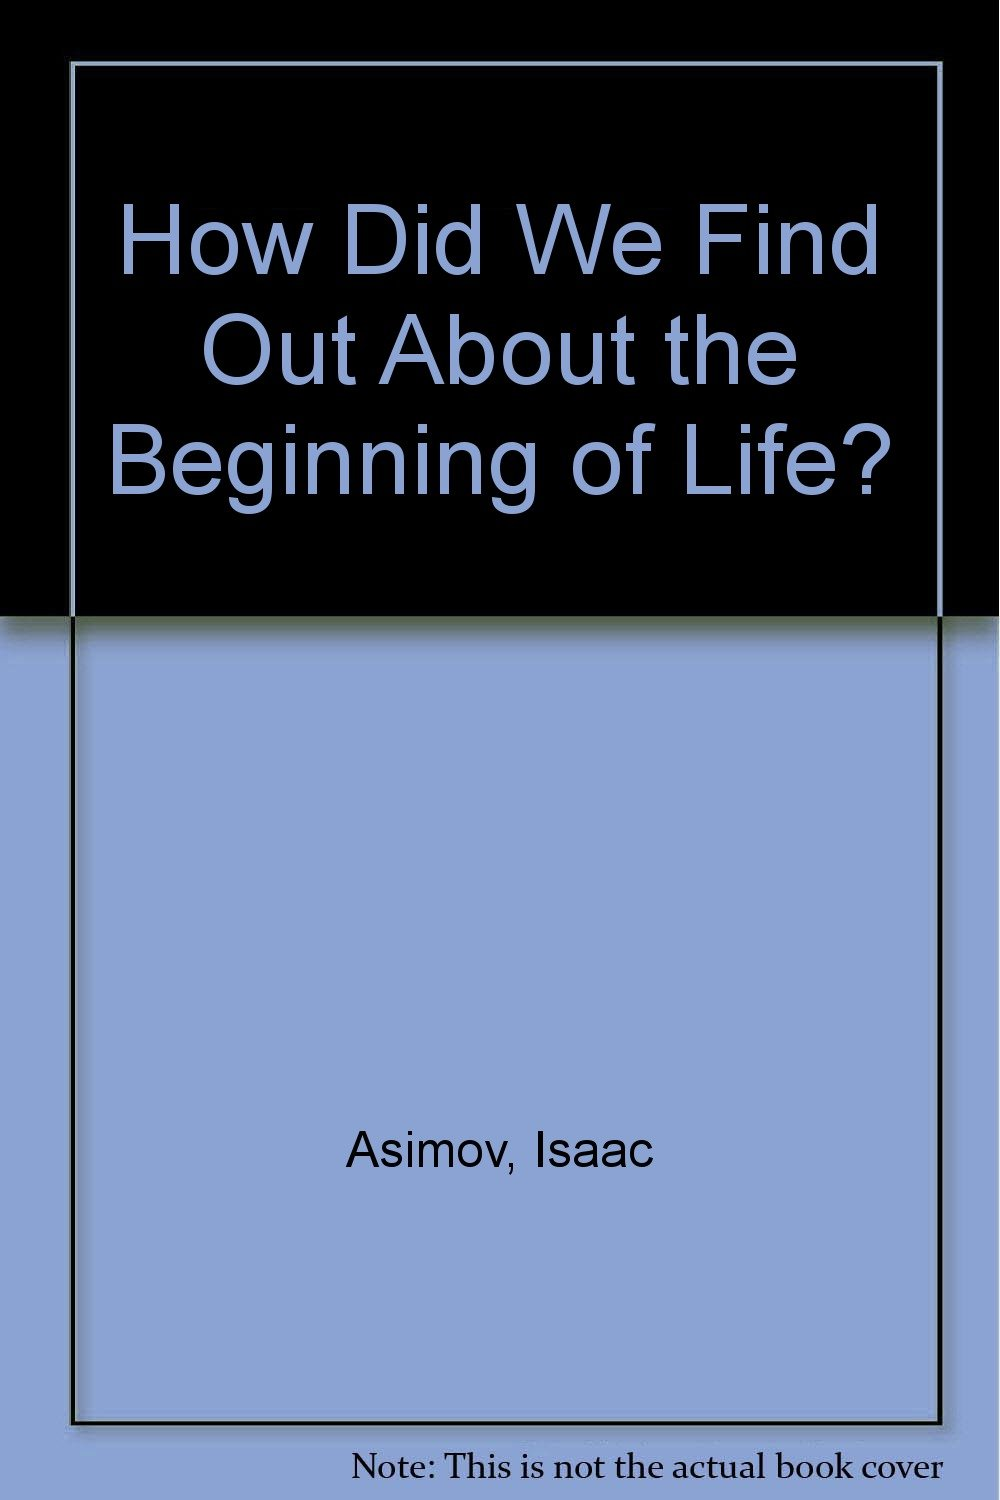 How Did We Find Out About the Beginning of Life?